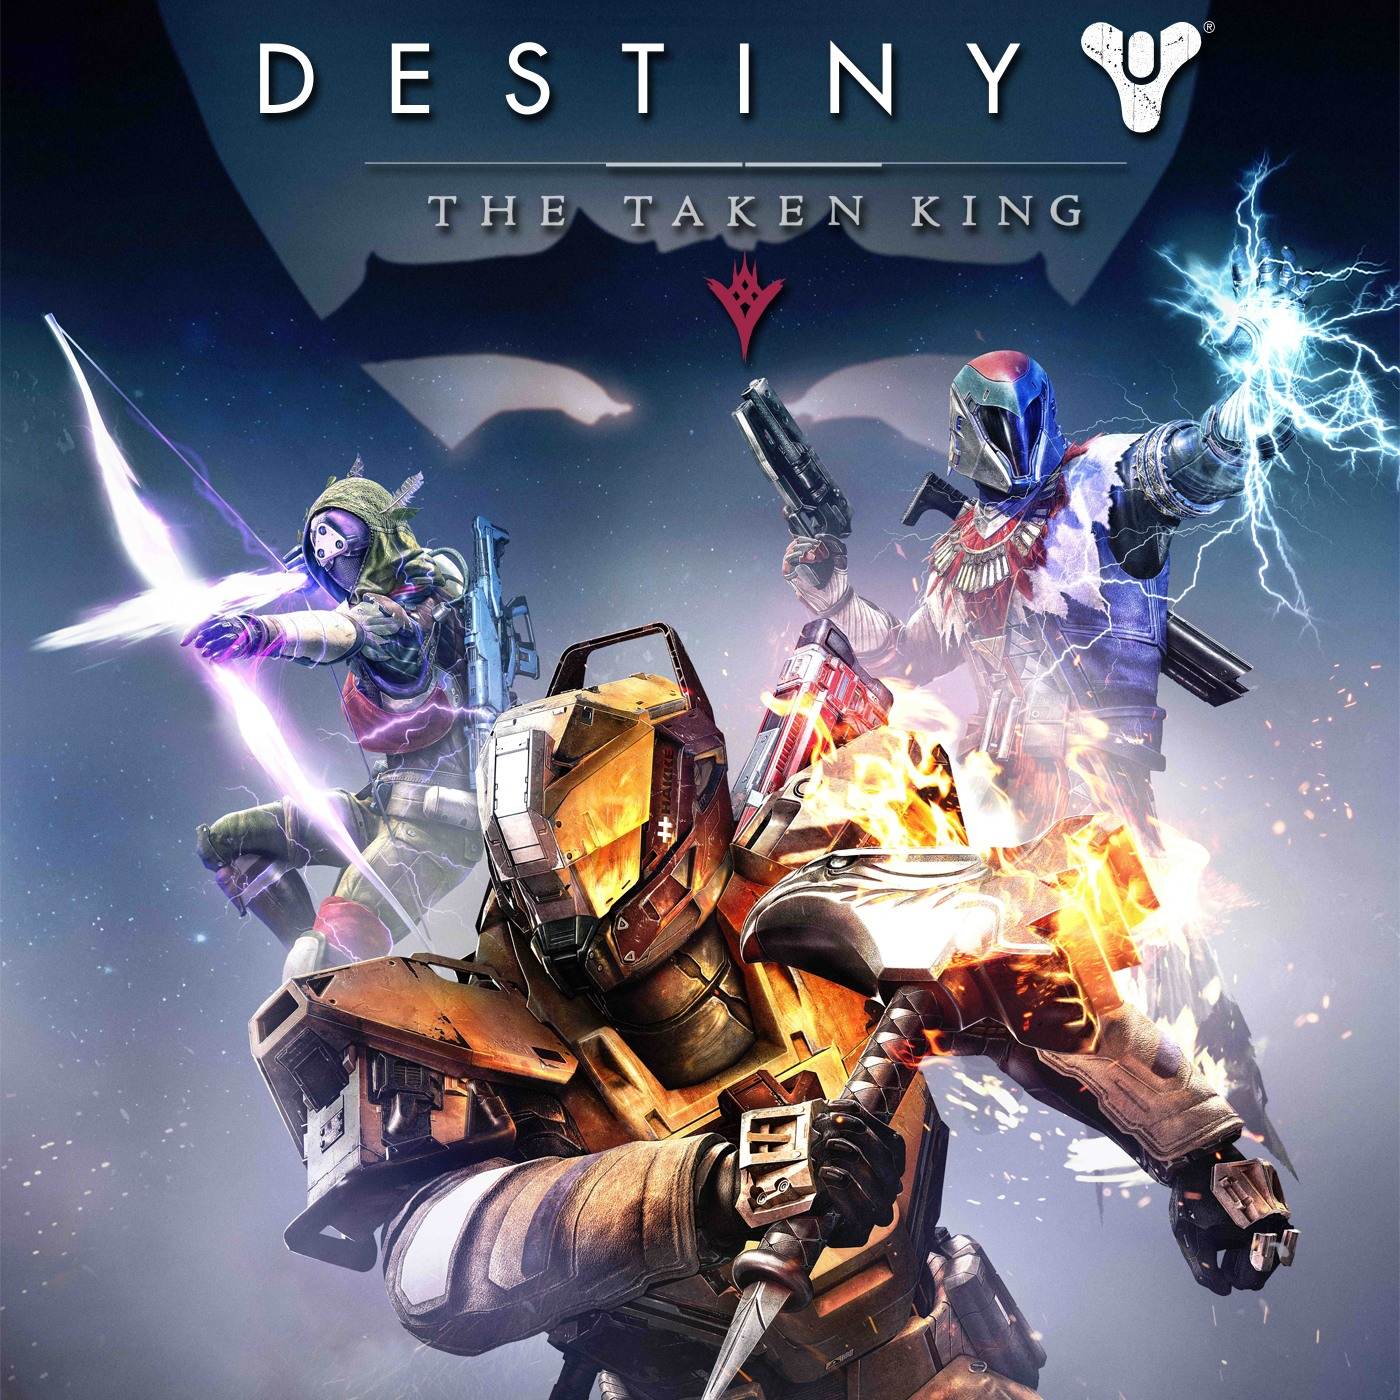 Destiny te dá asas  The Taken King terá quest para consumidores da Red Bull  - Voxel f6b976475cb